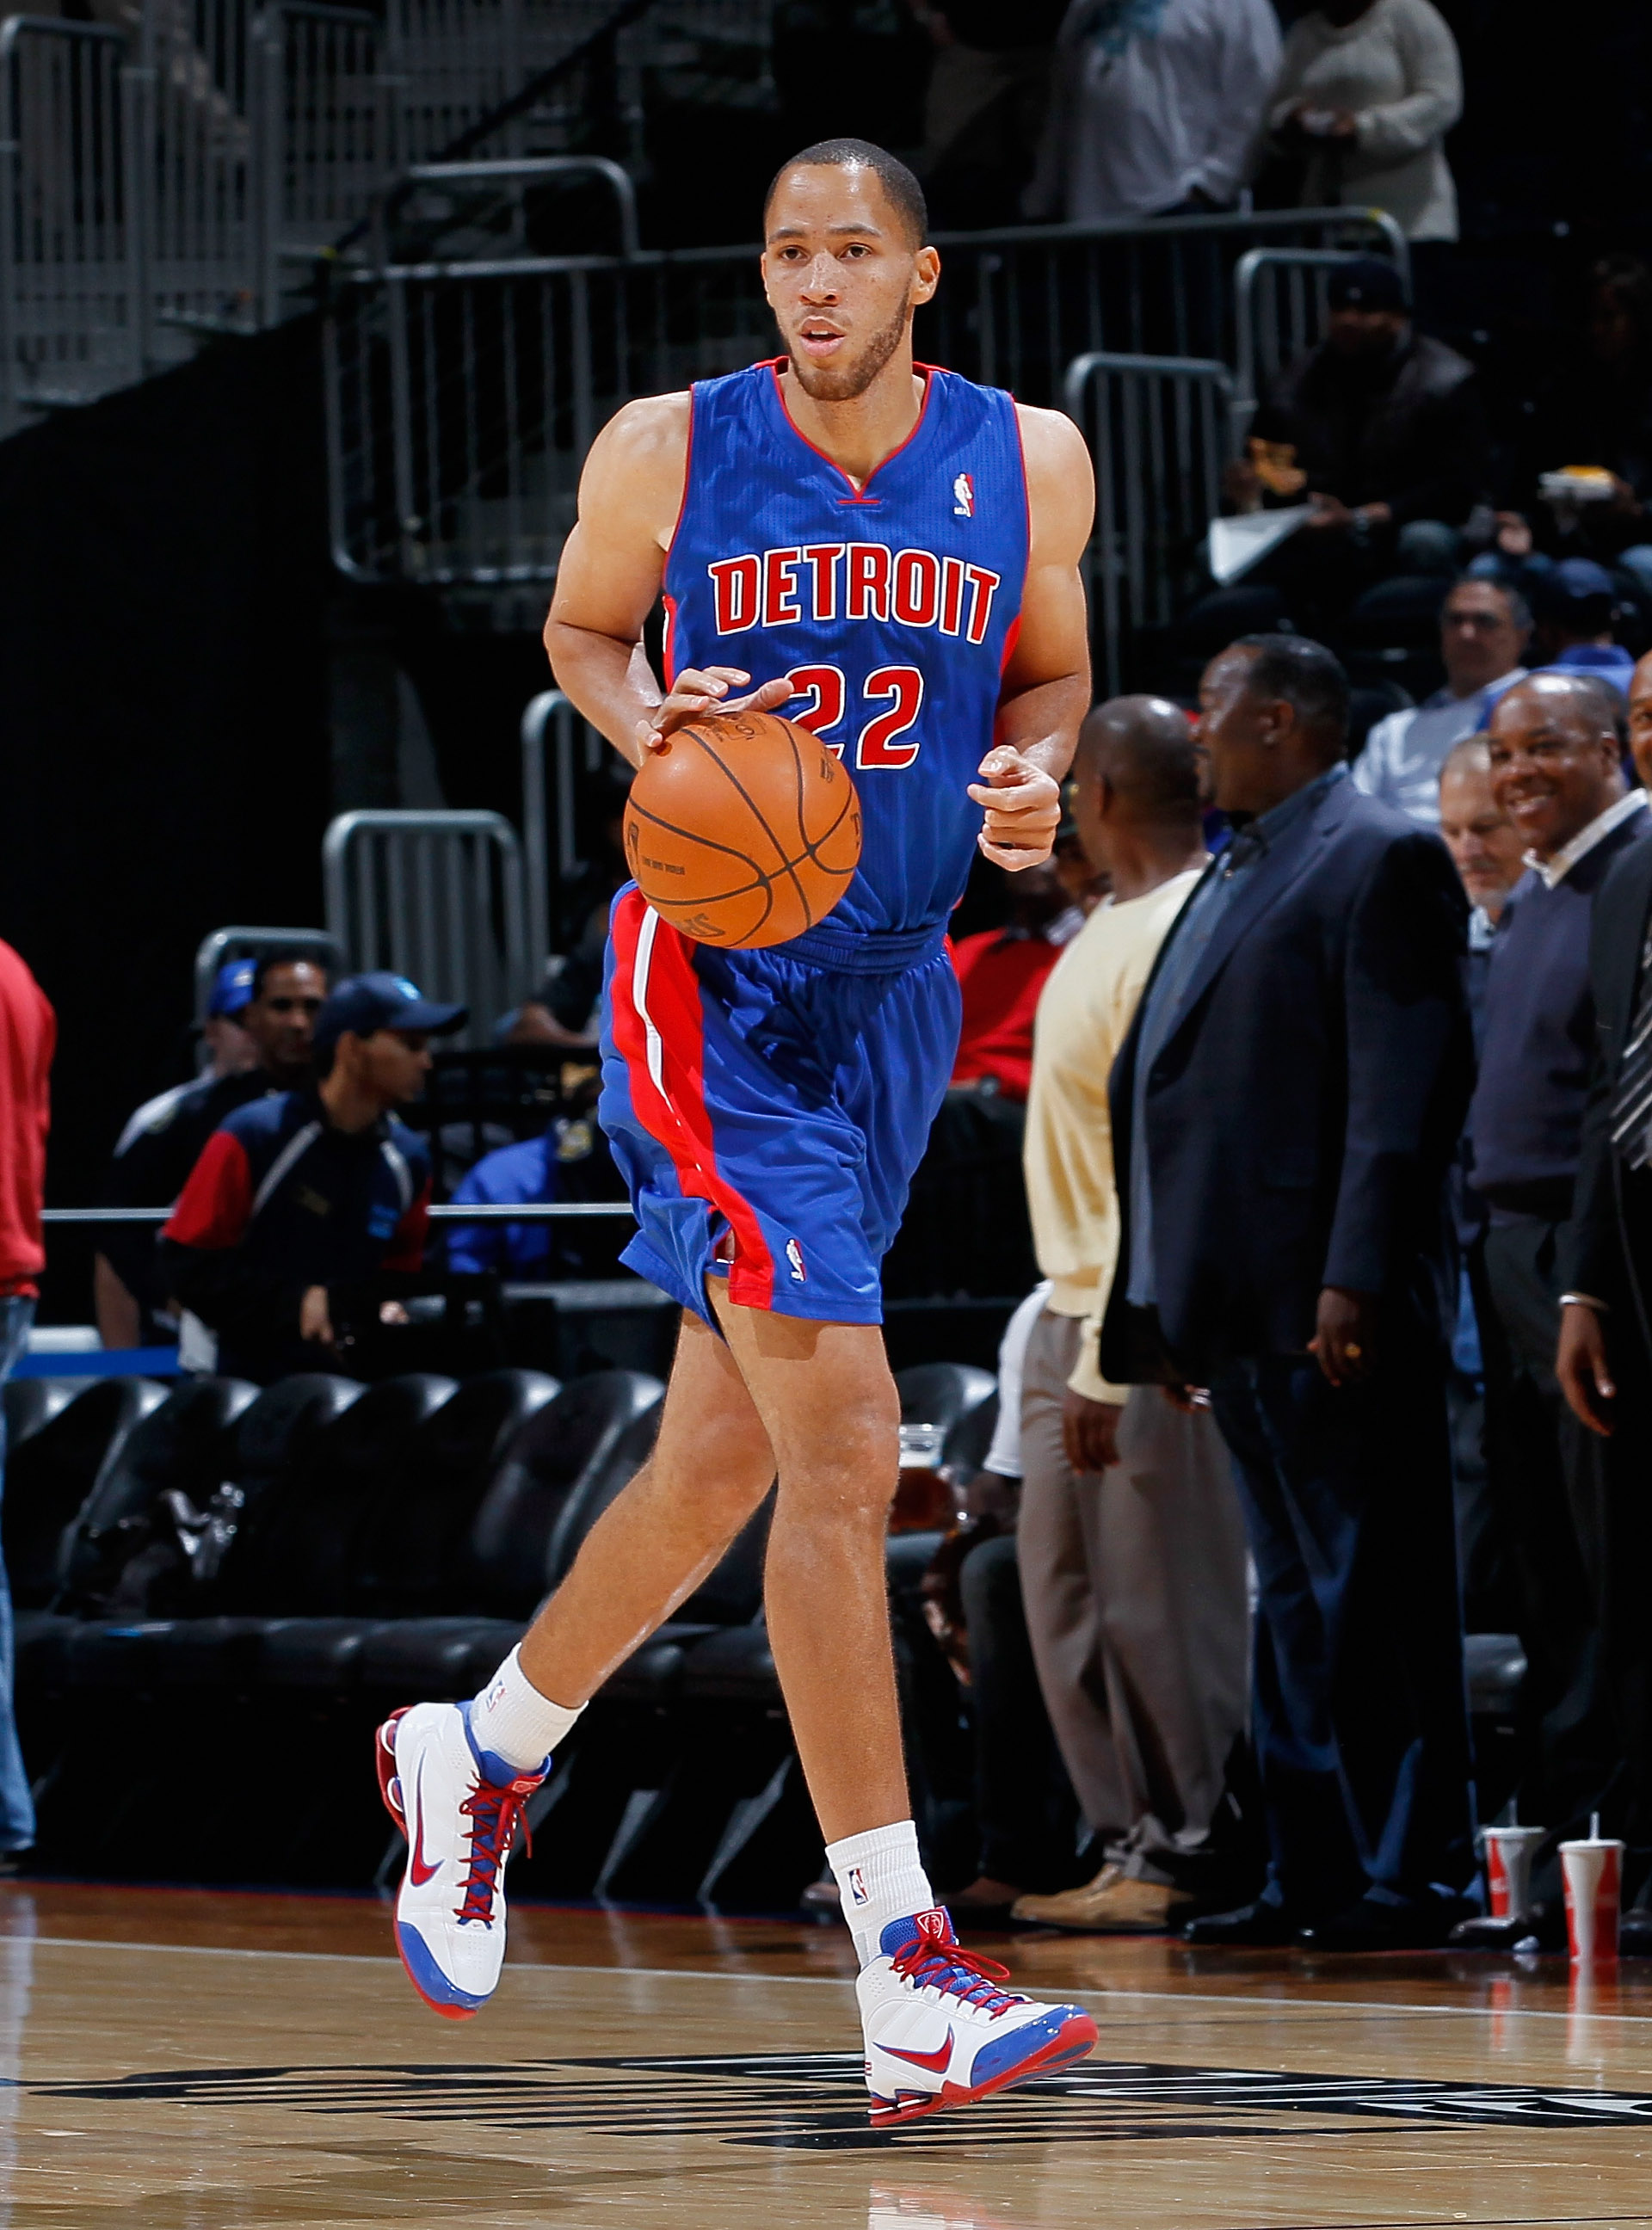 ATLANTA - NOVEMBER 03:  Tayshaun Prince #22 of the Detroit Pistons against the Atlanta Hawks at Philips Arena on November 3, 2010 in Atlanta, Georgia.  NOTE TO USER: User expressly acknowledges and agrees that, by downloading and/or using this Photograph,